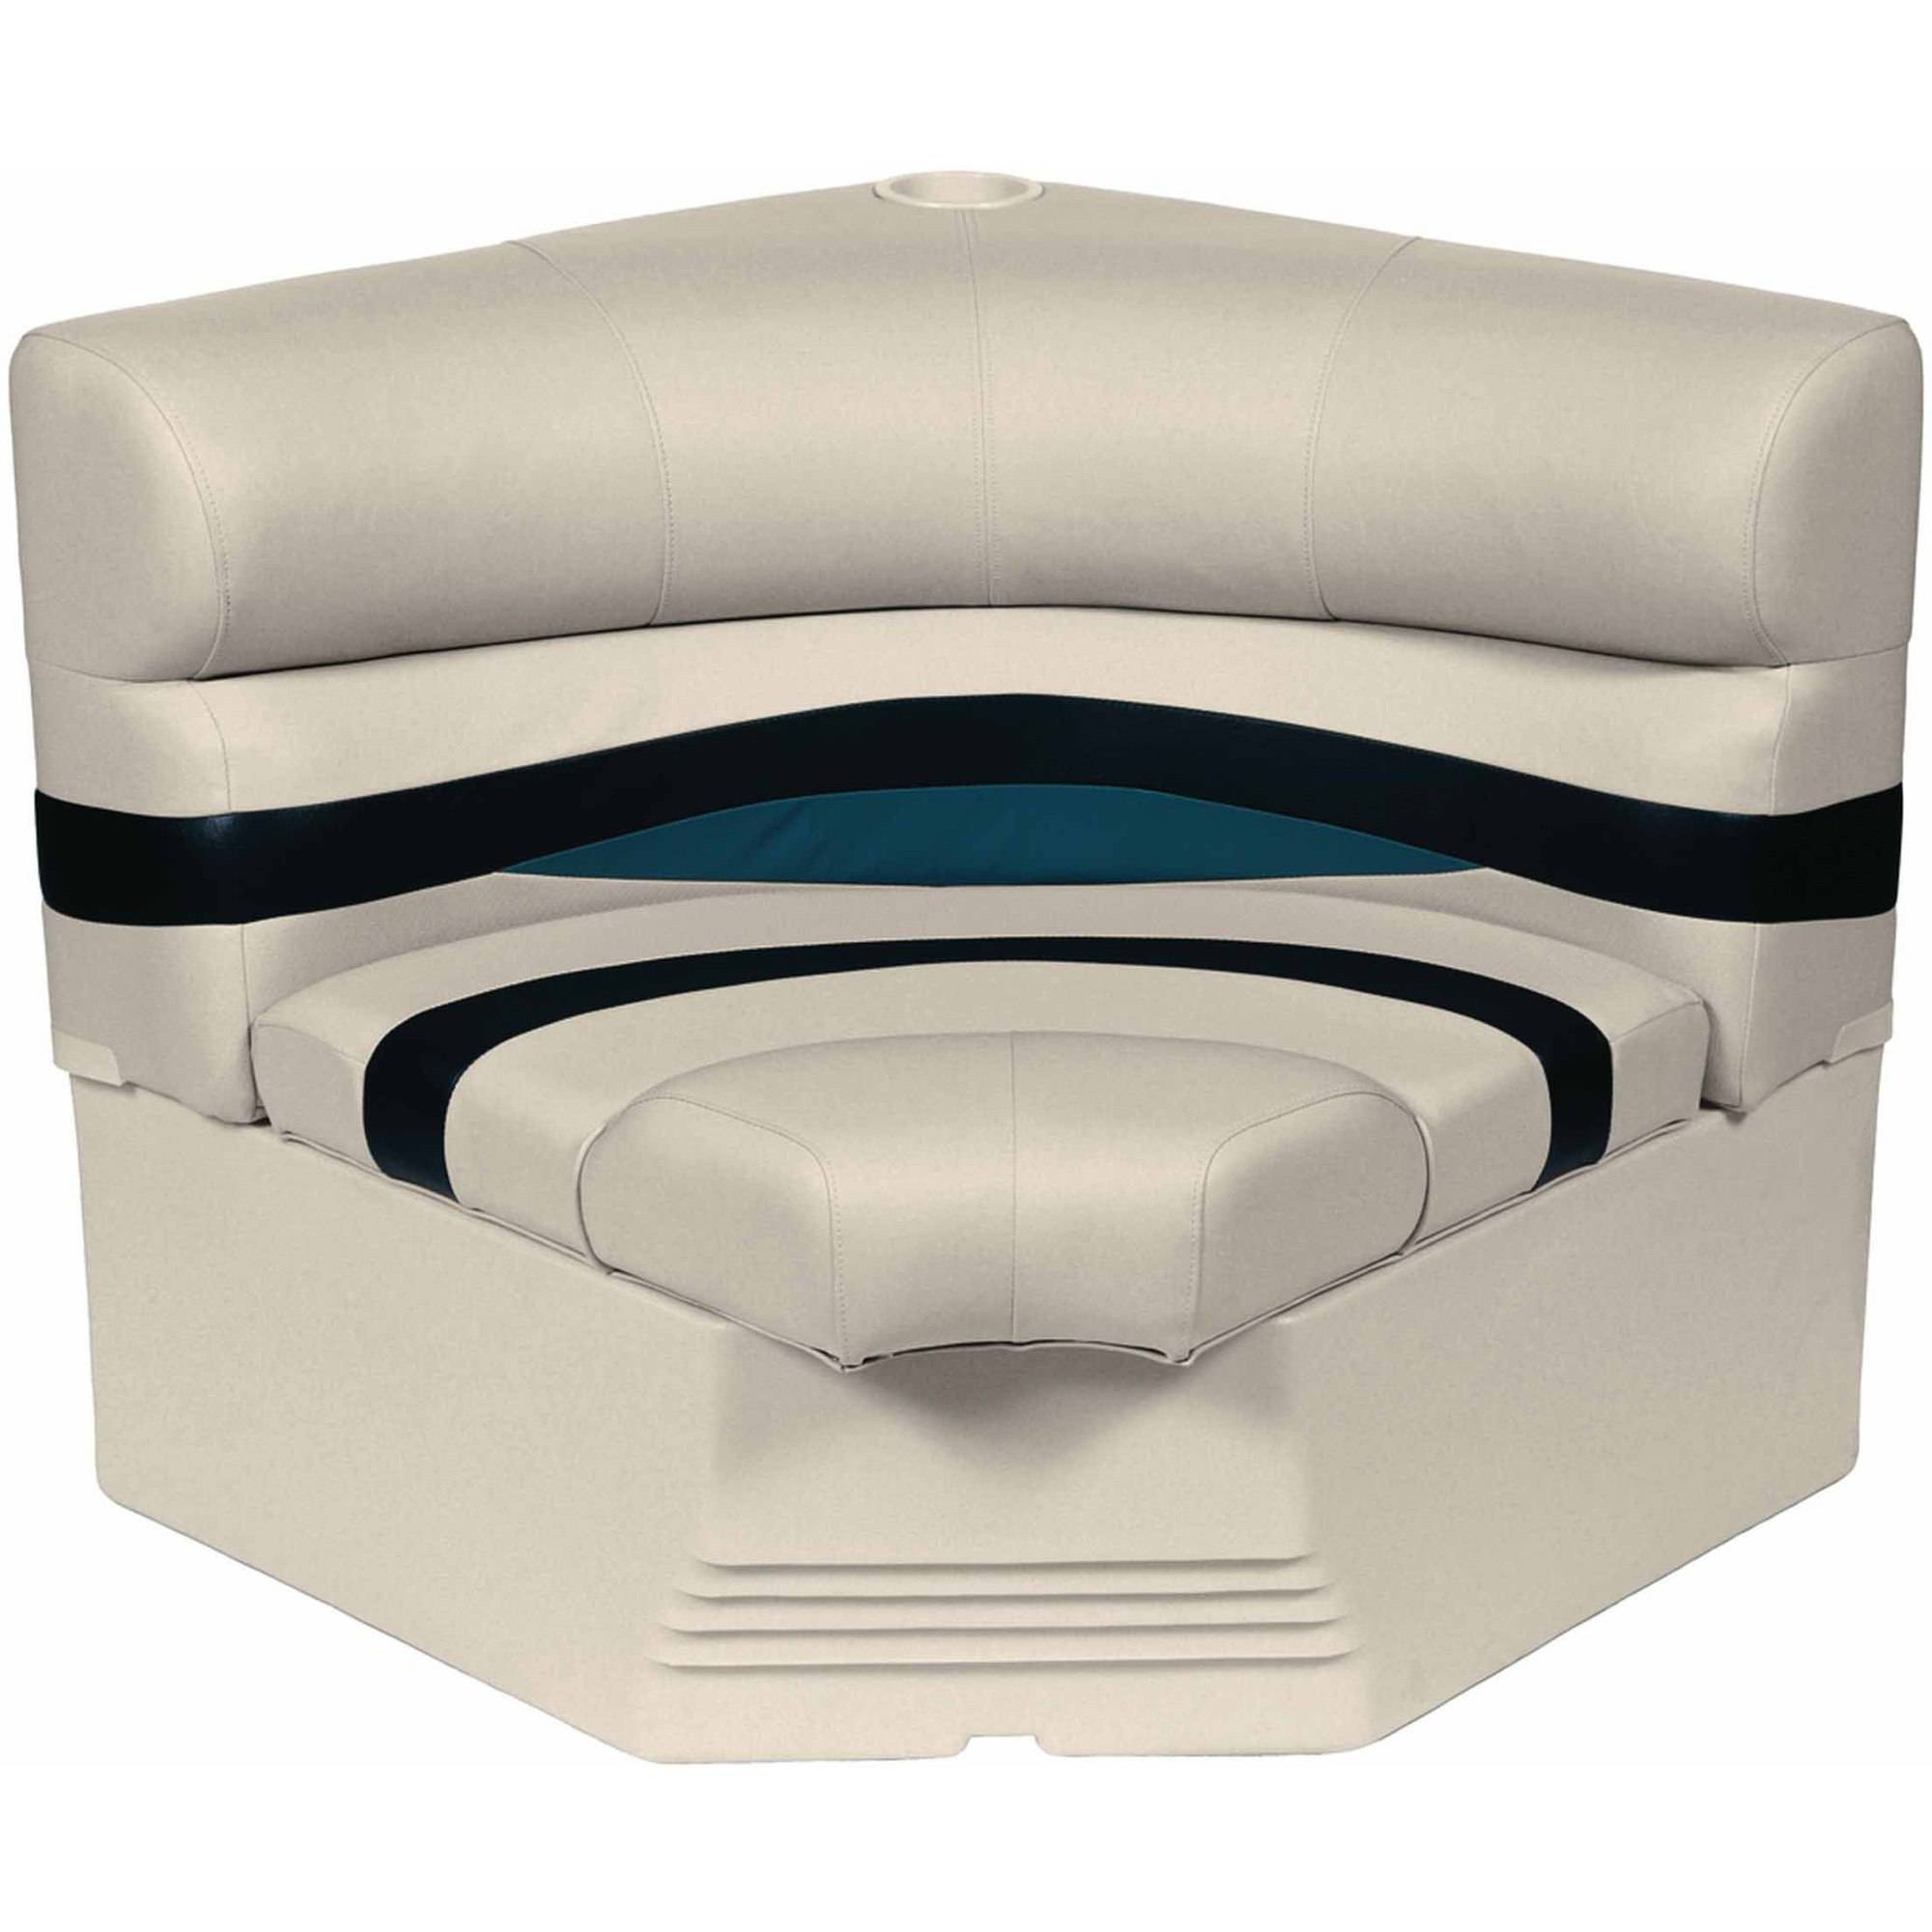 "Wise Premier Series Pontoon 32"" Radius Corner Seat and Base"